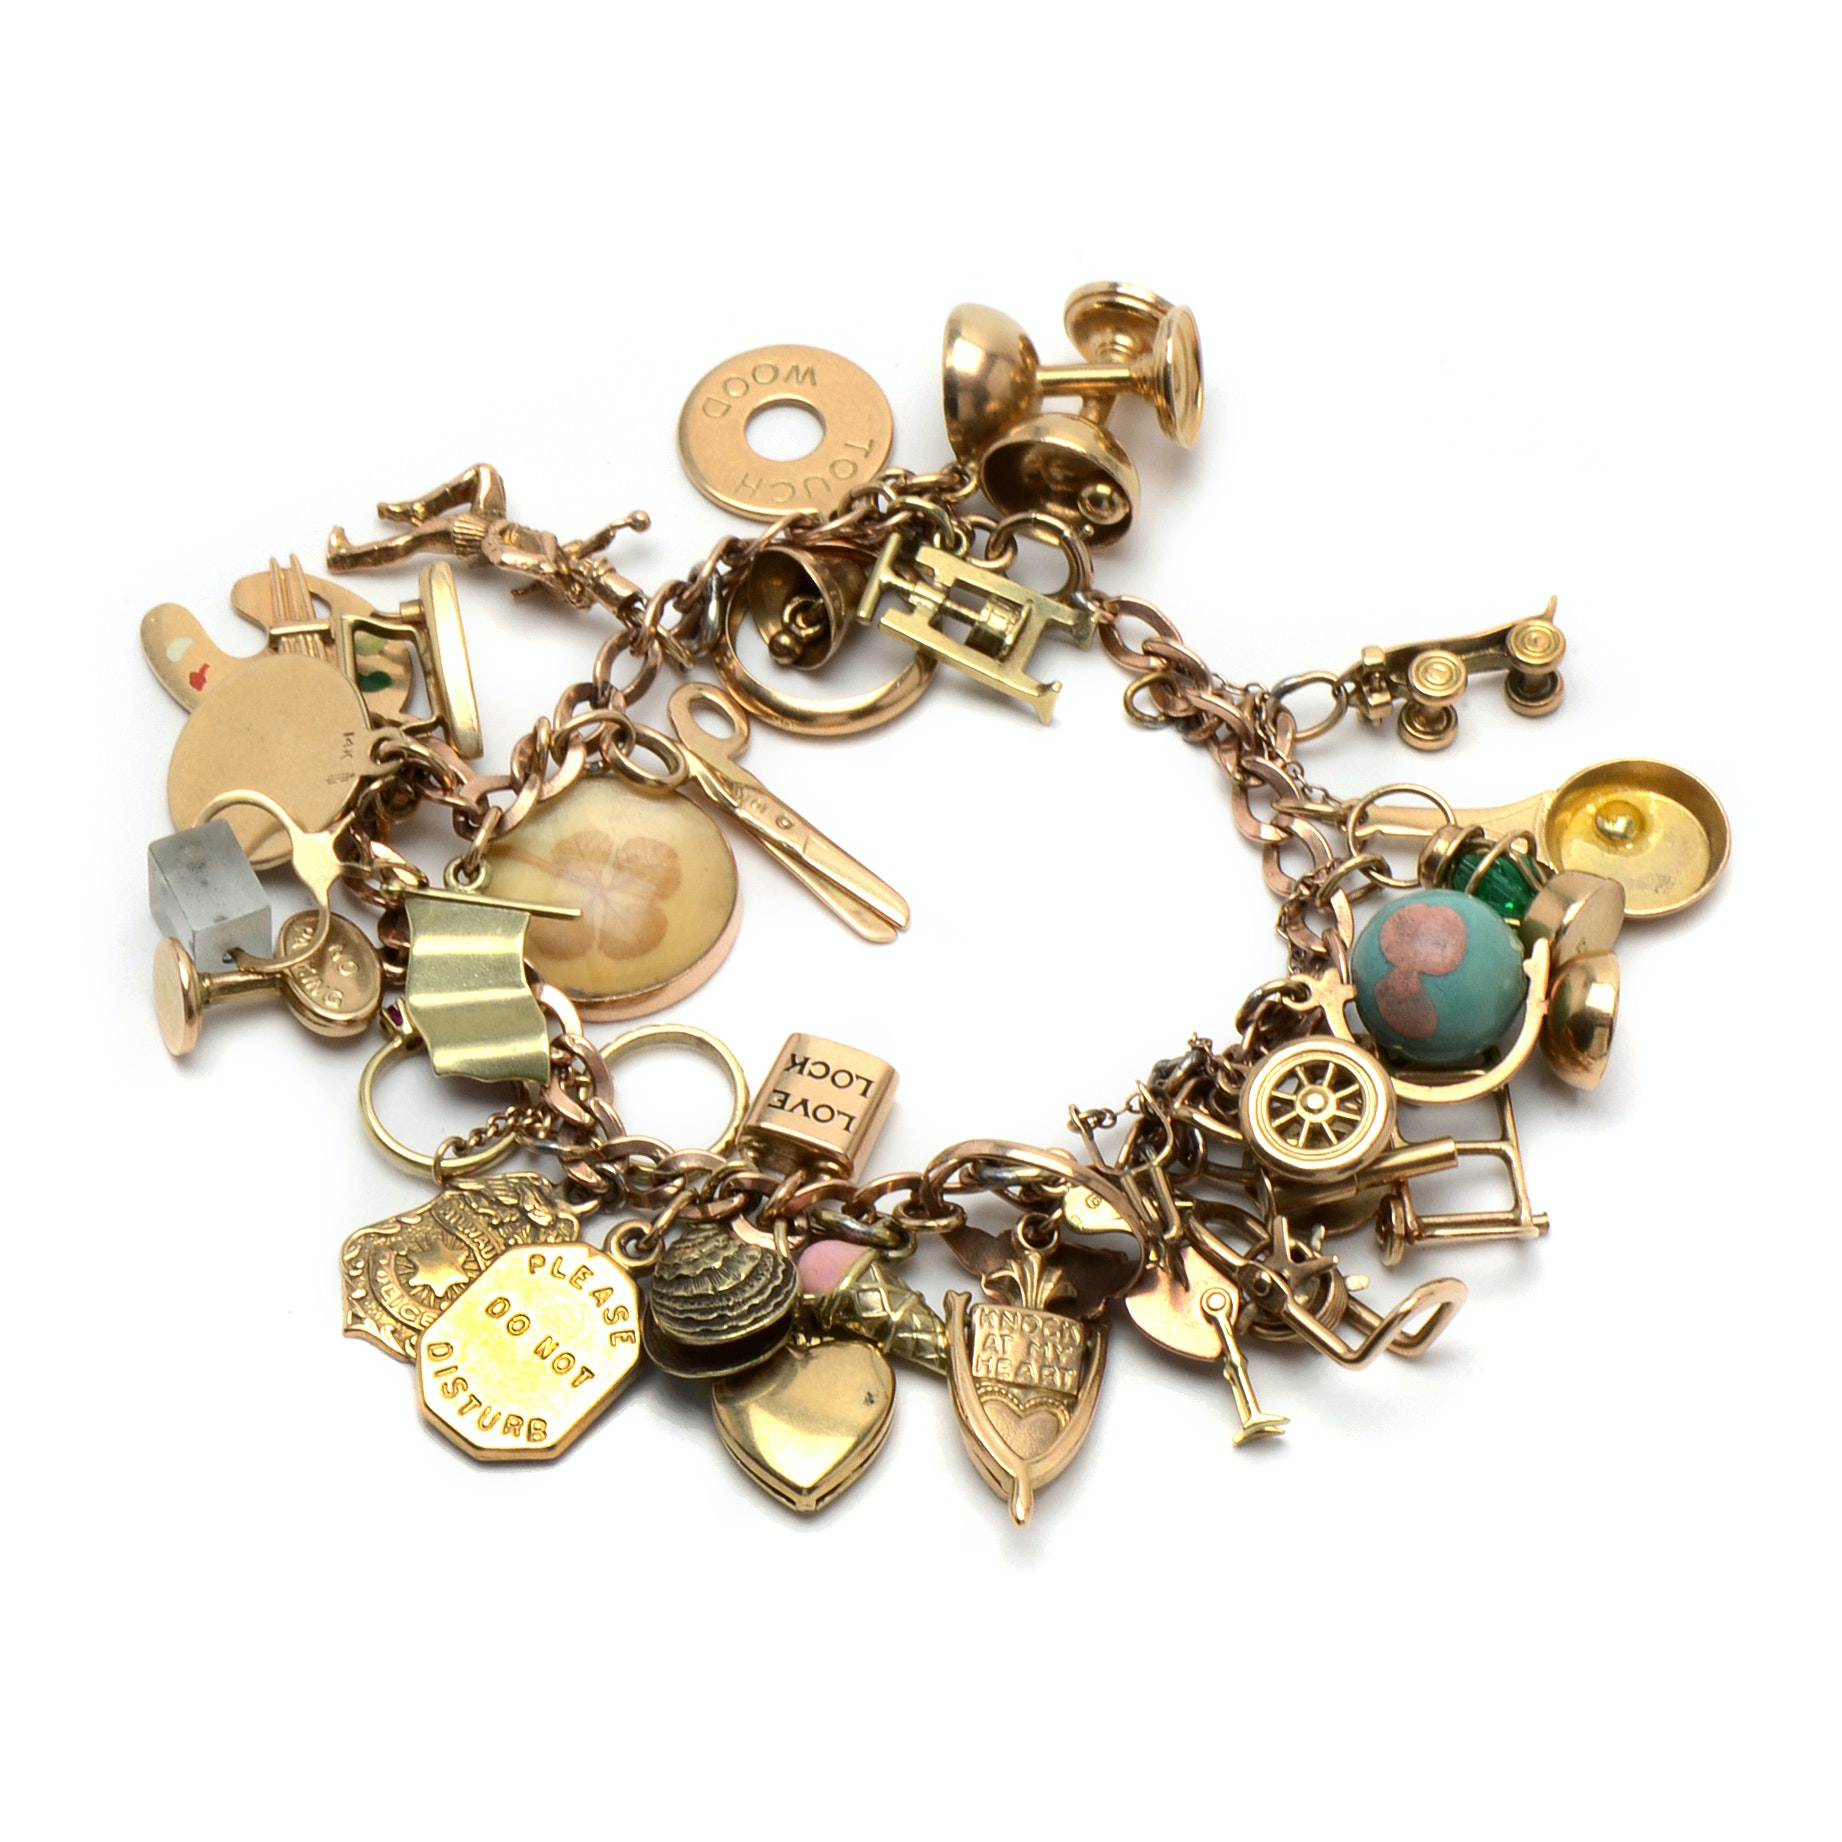 10K Yellow Gold Charm Bracelet with 10K and 14K Yellow Gold Charms